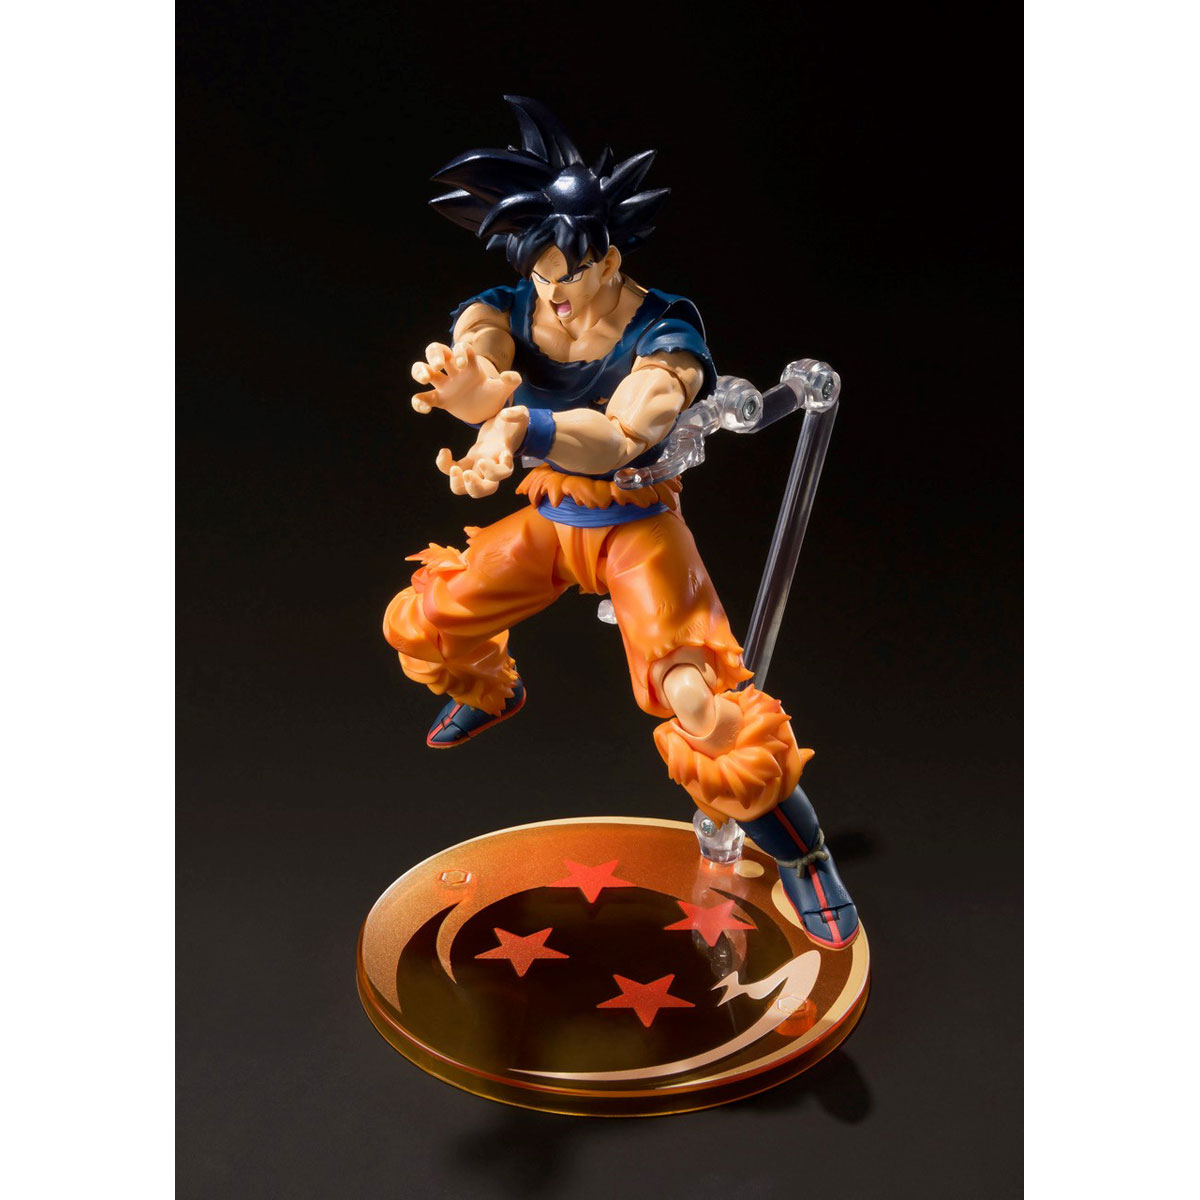 Tamashii Stage Dragon Ball -Event Exclusive Metallic Color Edition-  (7pcs set)